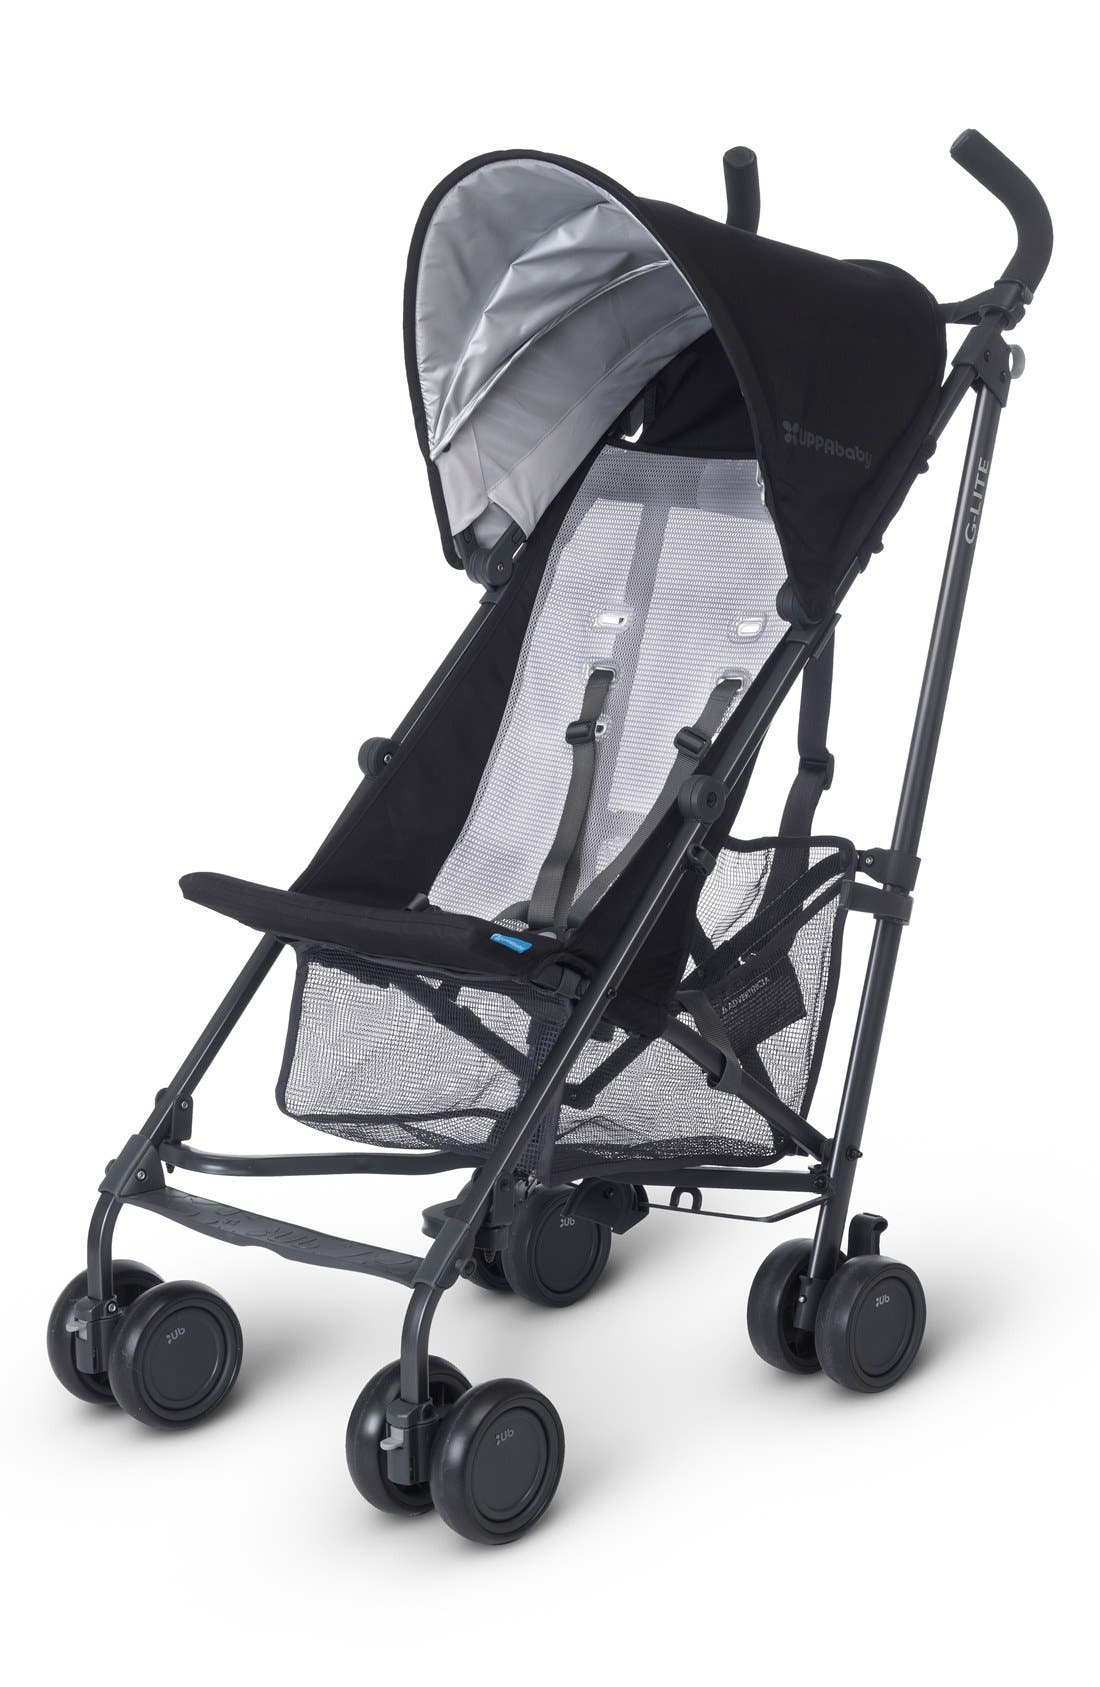 Alternate Image 1 Selected - UPPAbaby G-LiTE - Black Frame Stroller